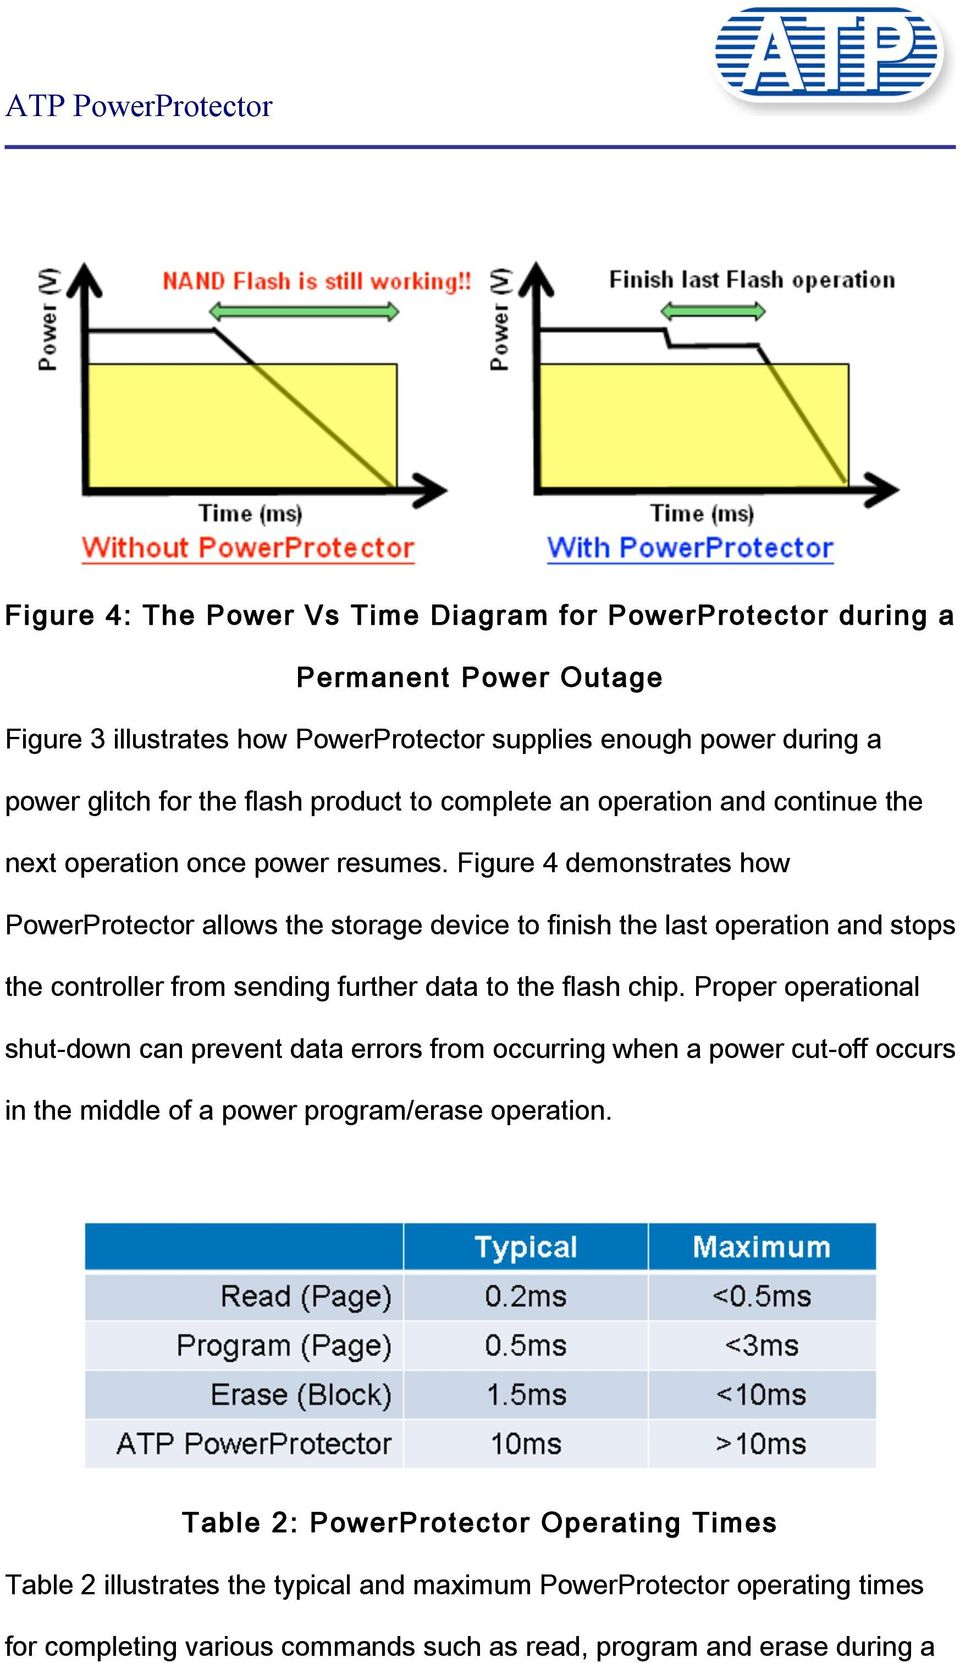 Figure 4 demonstrates how PowerProtector allows the storage device to finish the last operation and stops the controller from sending further data to the flash chip.